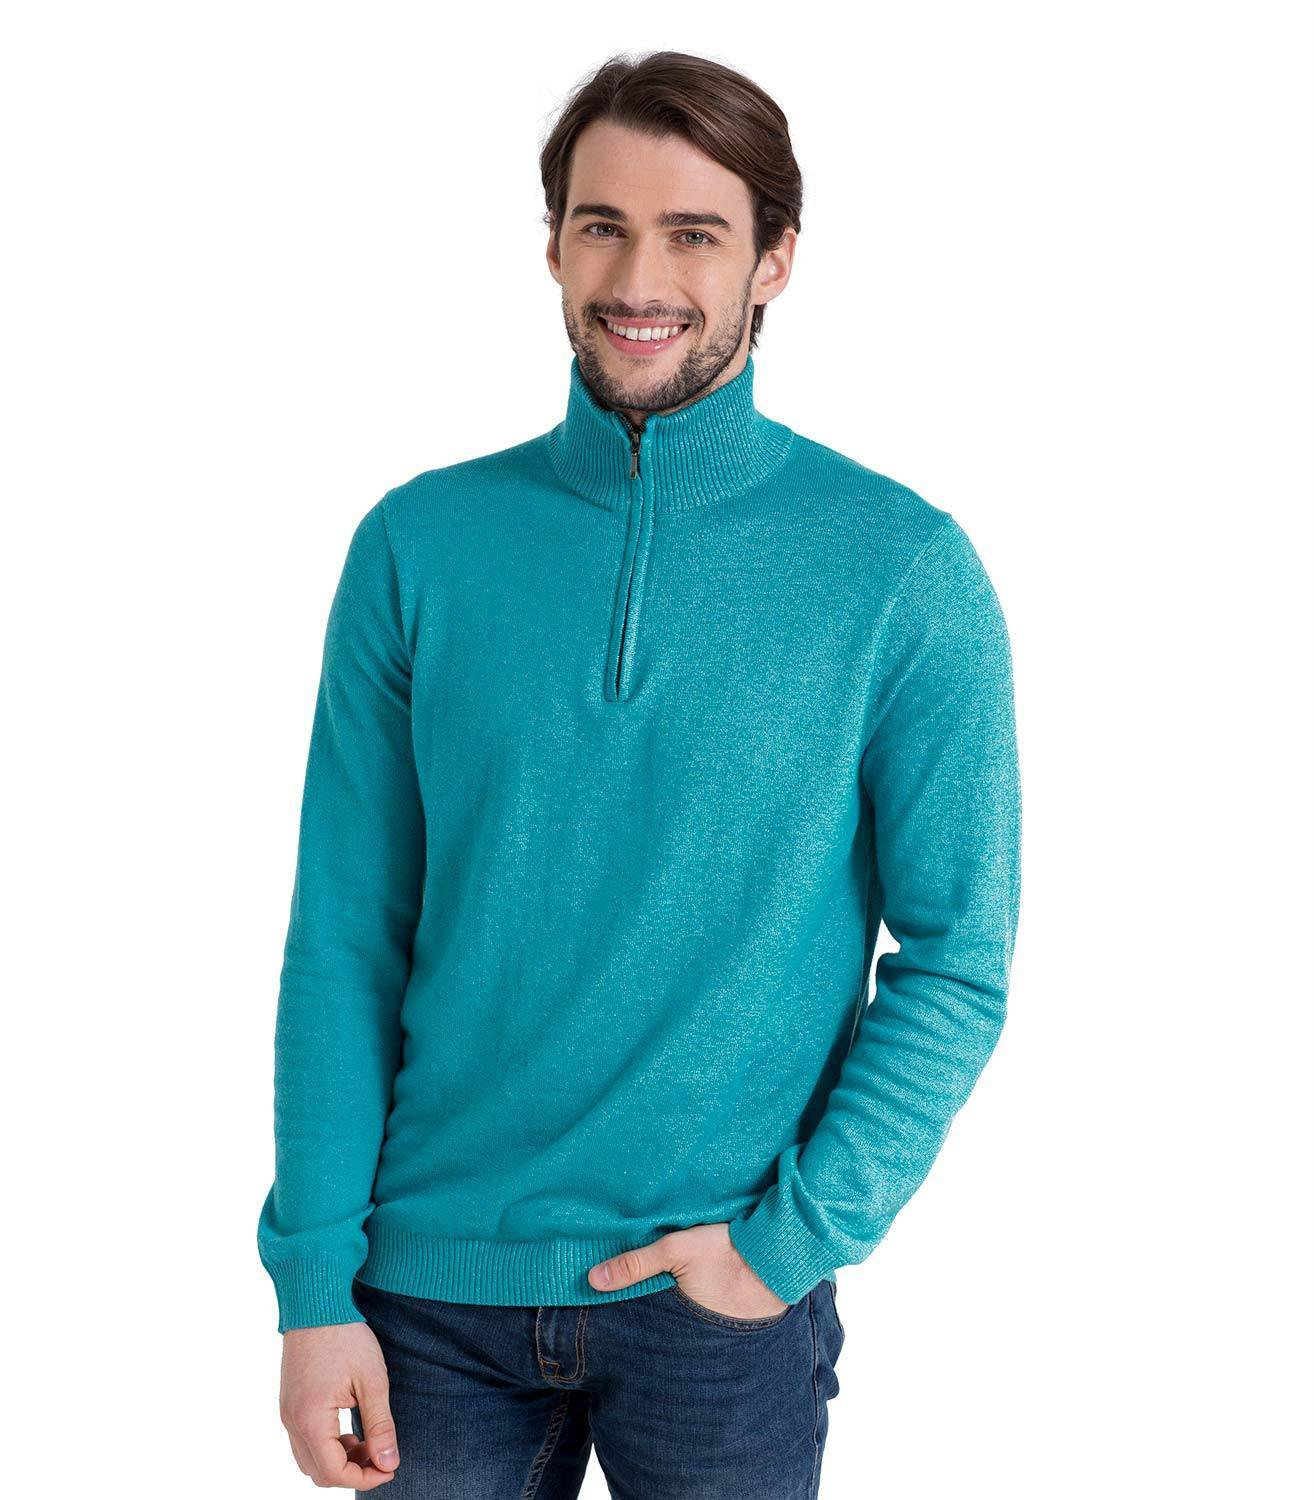 ccda2f9258df4d WoolOvers Mens Cashmere and Cotton Zip Neck Jumper Sweater Pullover Knitwear